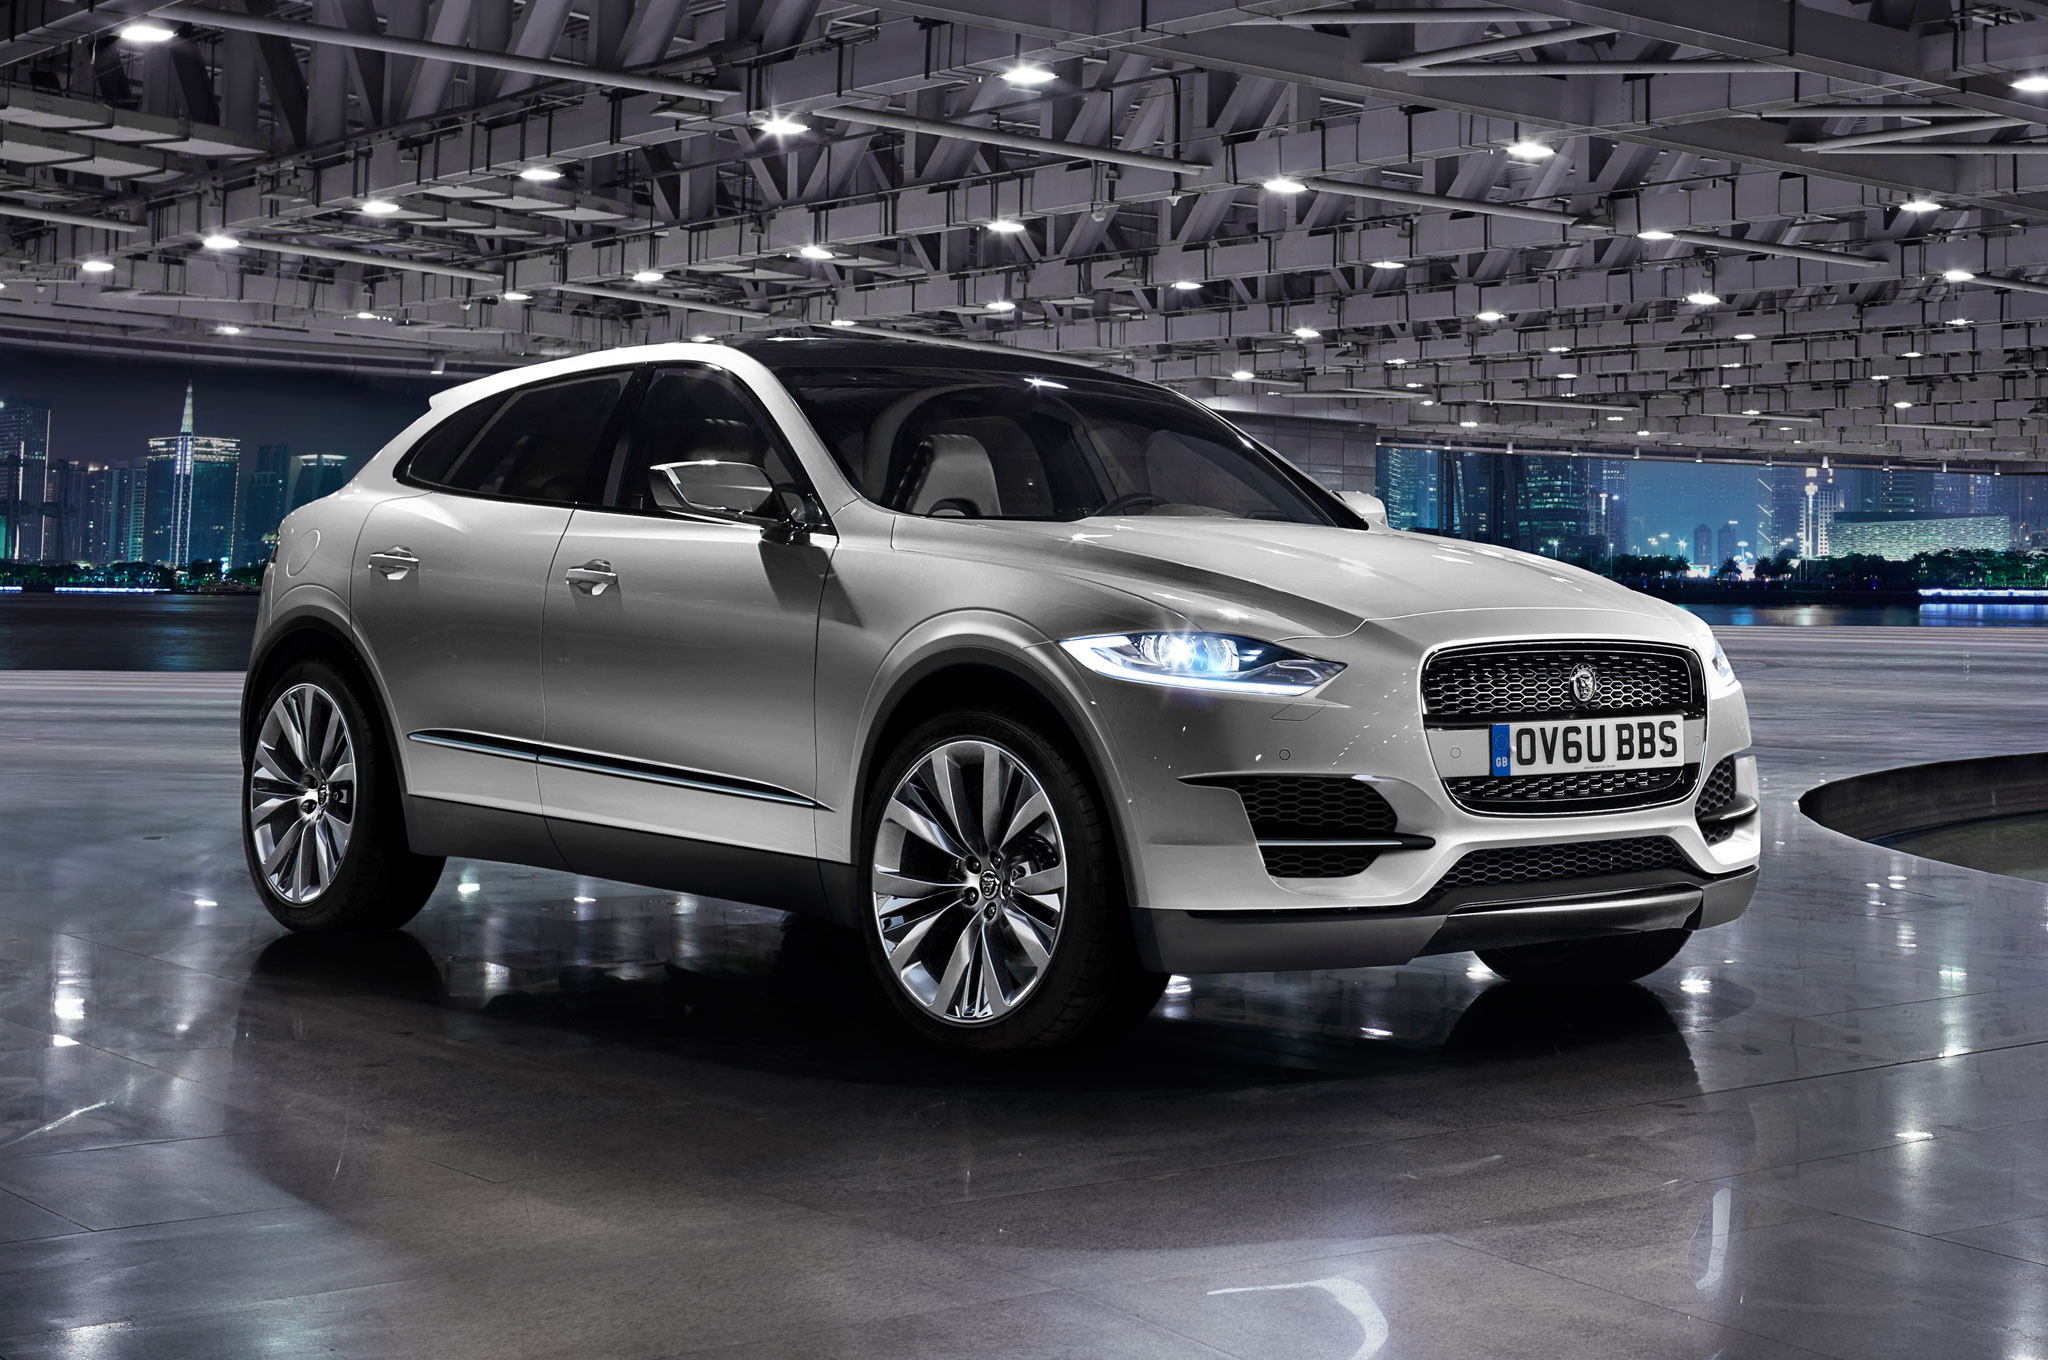 2018 Diesel Suv >> The Cars (and Men) That Can Revive Jaguar and Land Rover ...